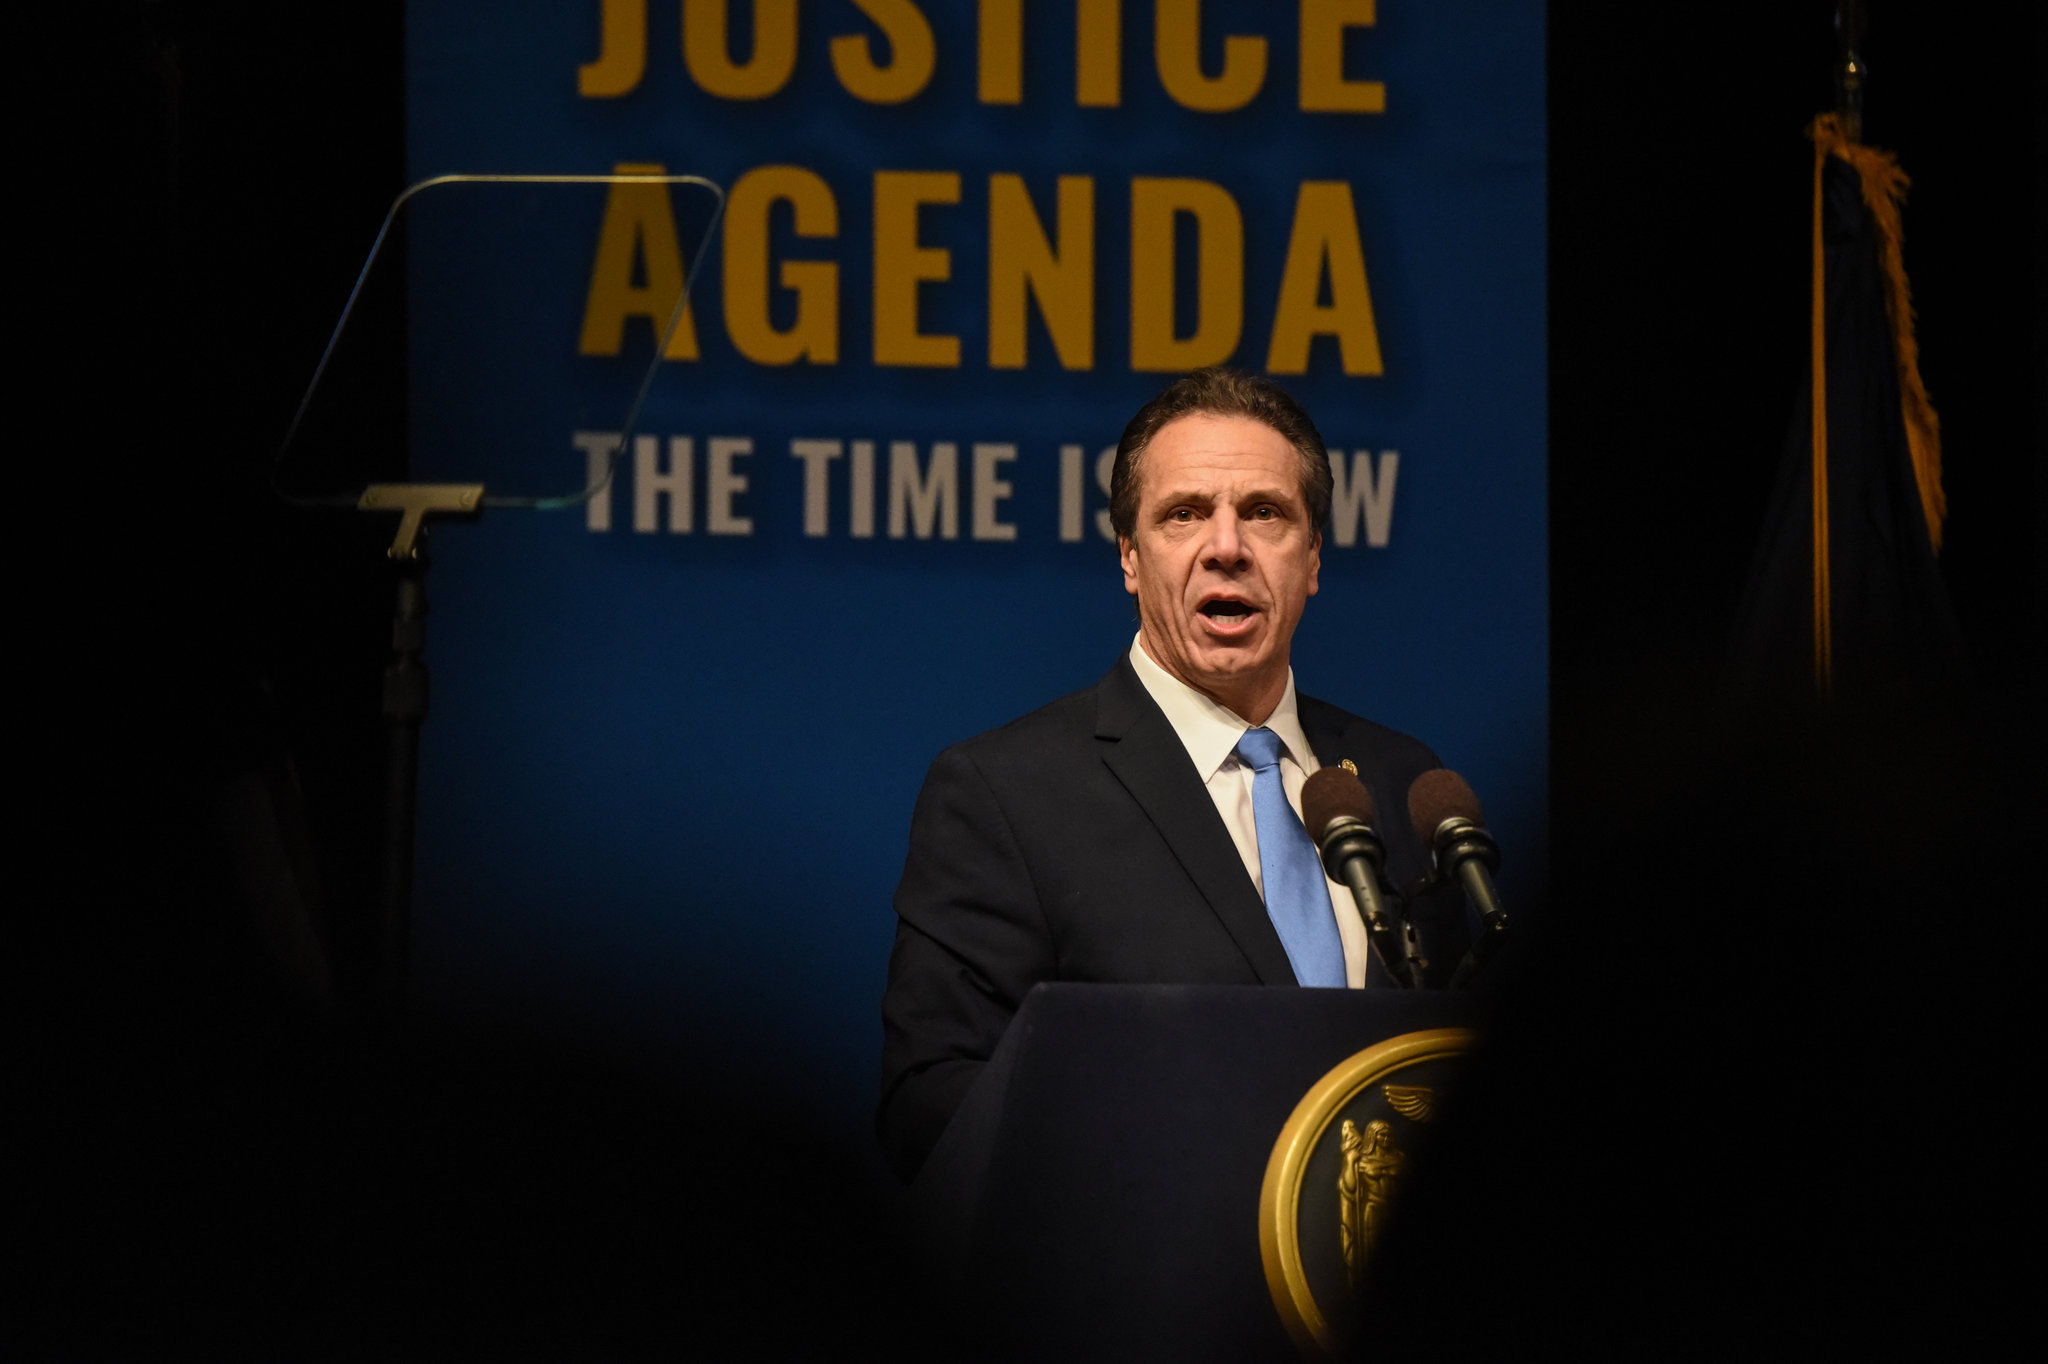 State Governor Andrew Cuomo